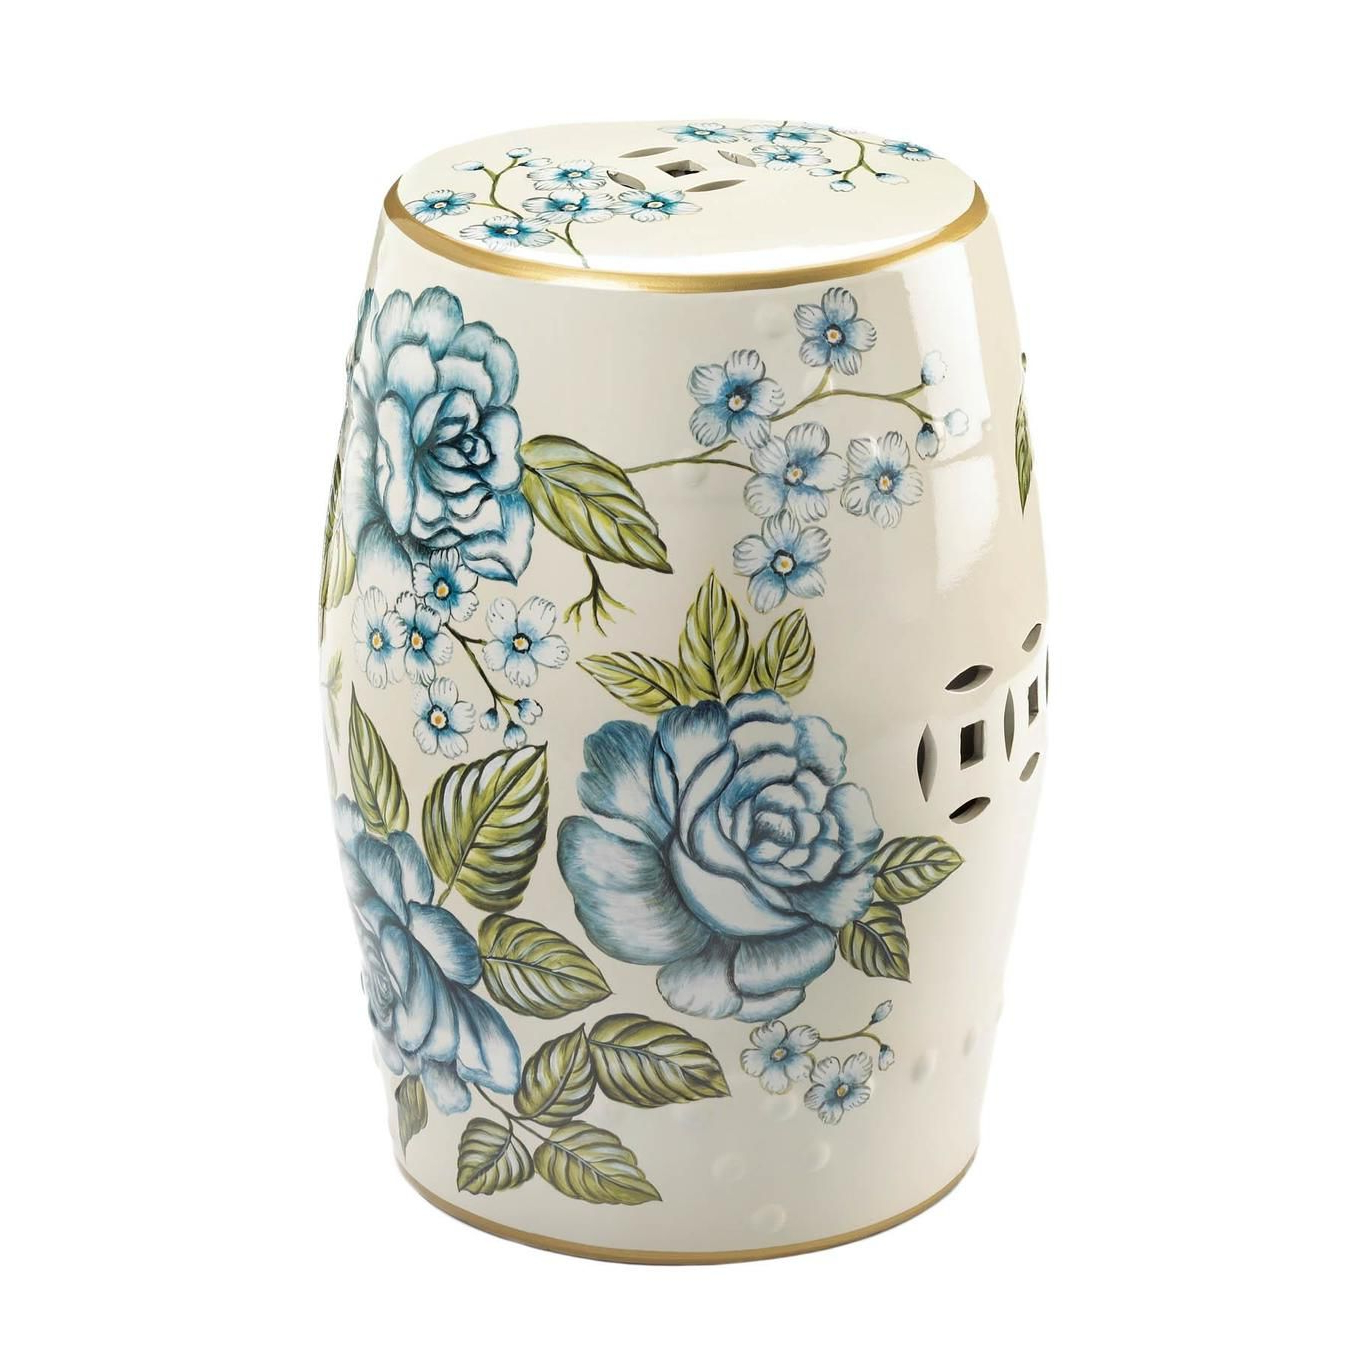 Popular Tillia Ceramic Garden Stools For Ceramic Garden Stolls (View 18 of 30)